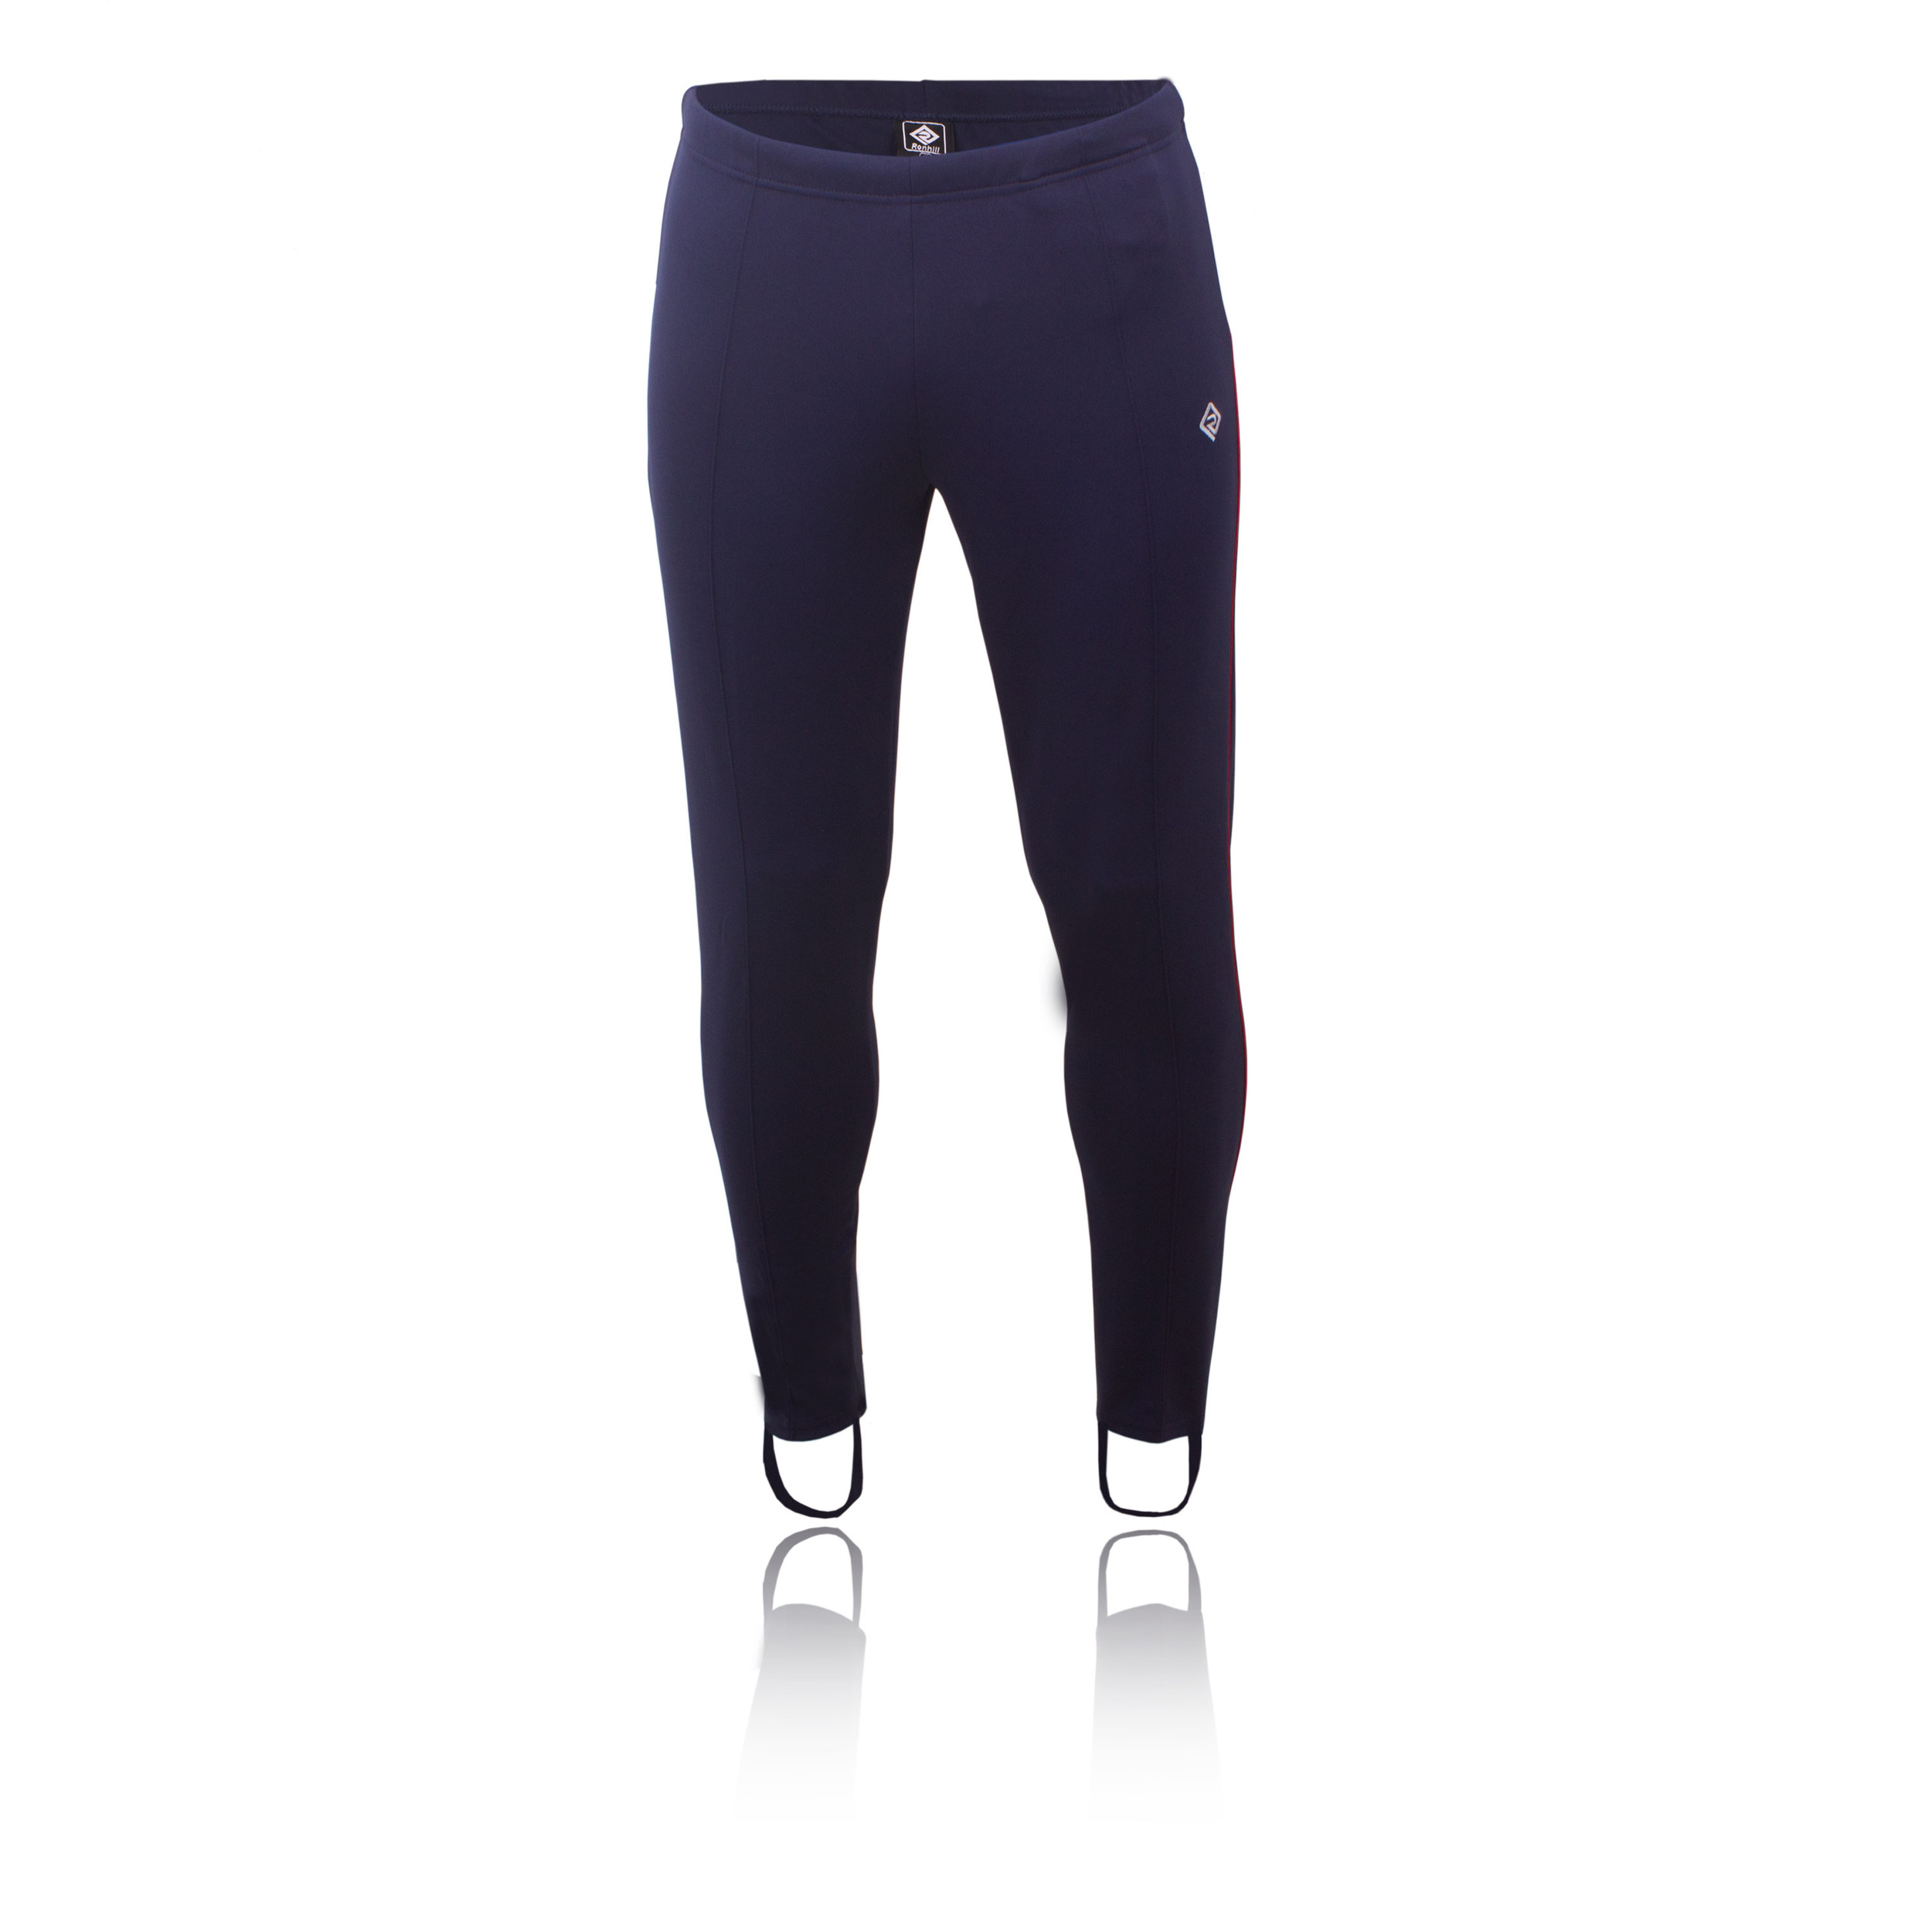 Ronhill Trackster Classic GT Mens Black Running Sports Track Pants Bottoms New